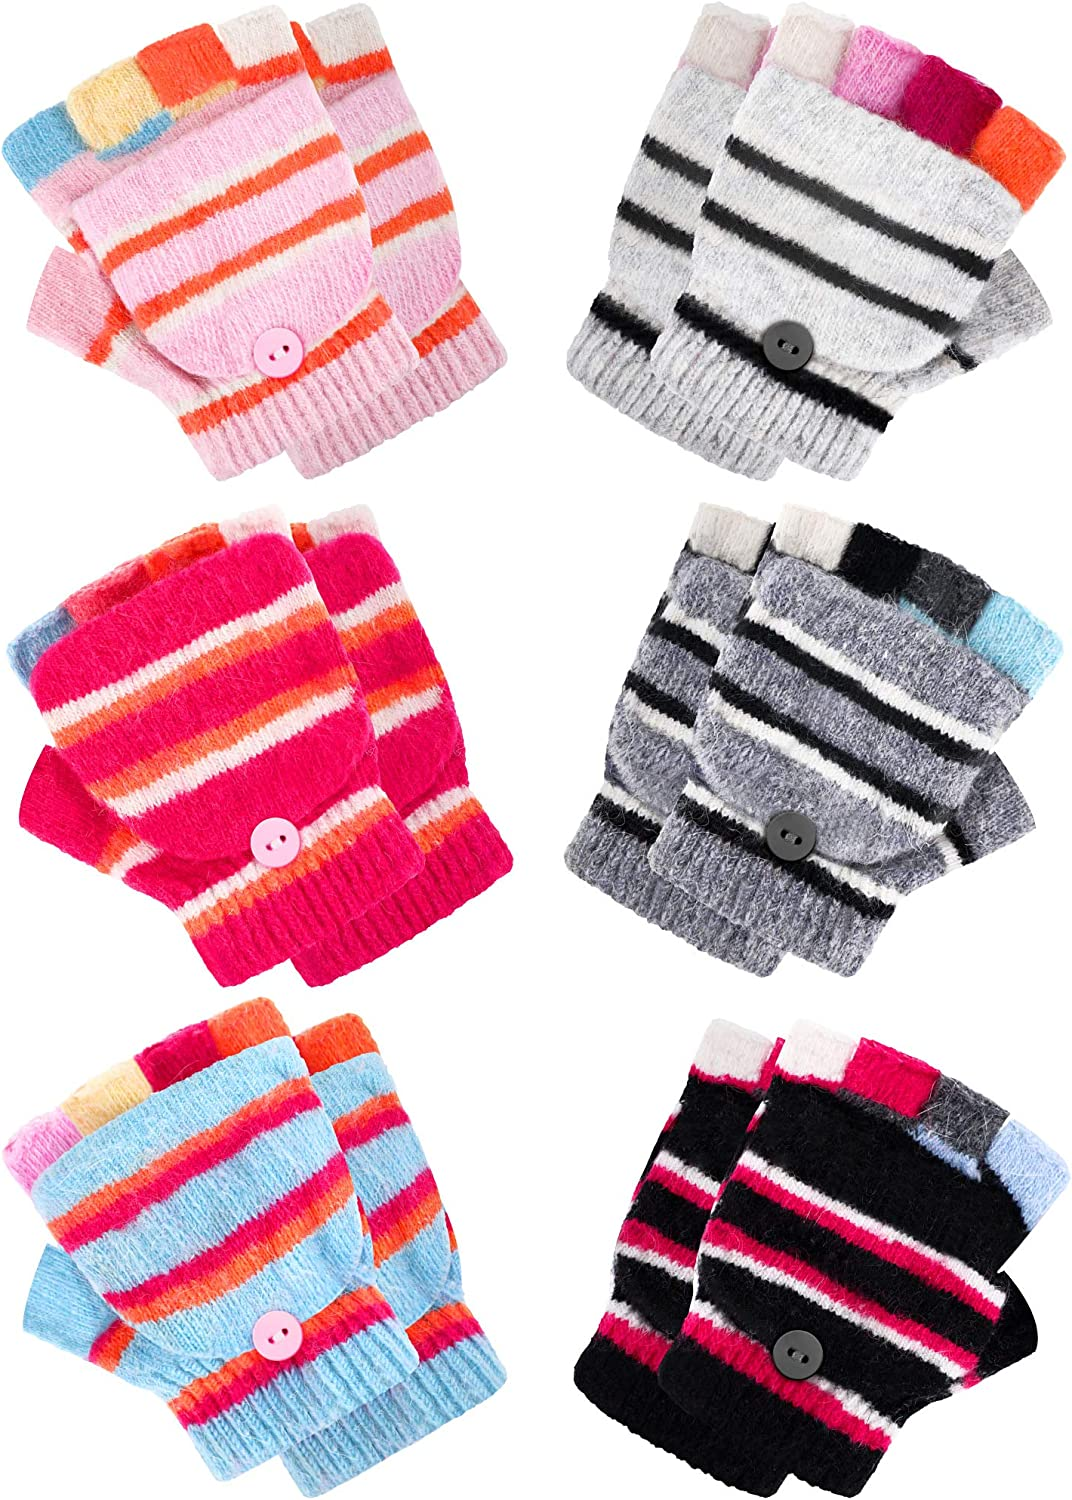 6 Pairs Convertible Fingerless Gloves Warm Knit Glove with Mitten Cover for Kids of 4-11 Years Old